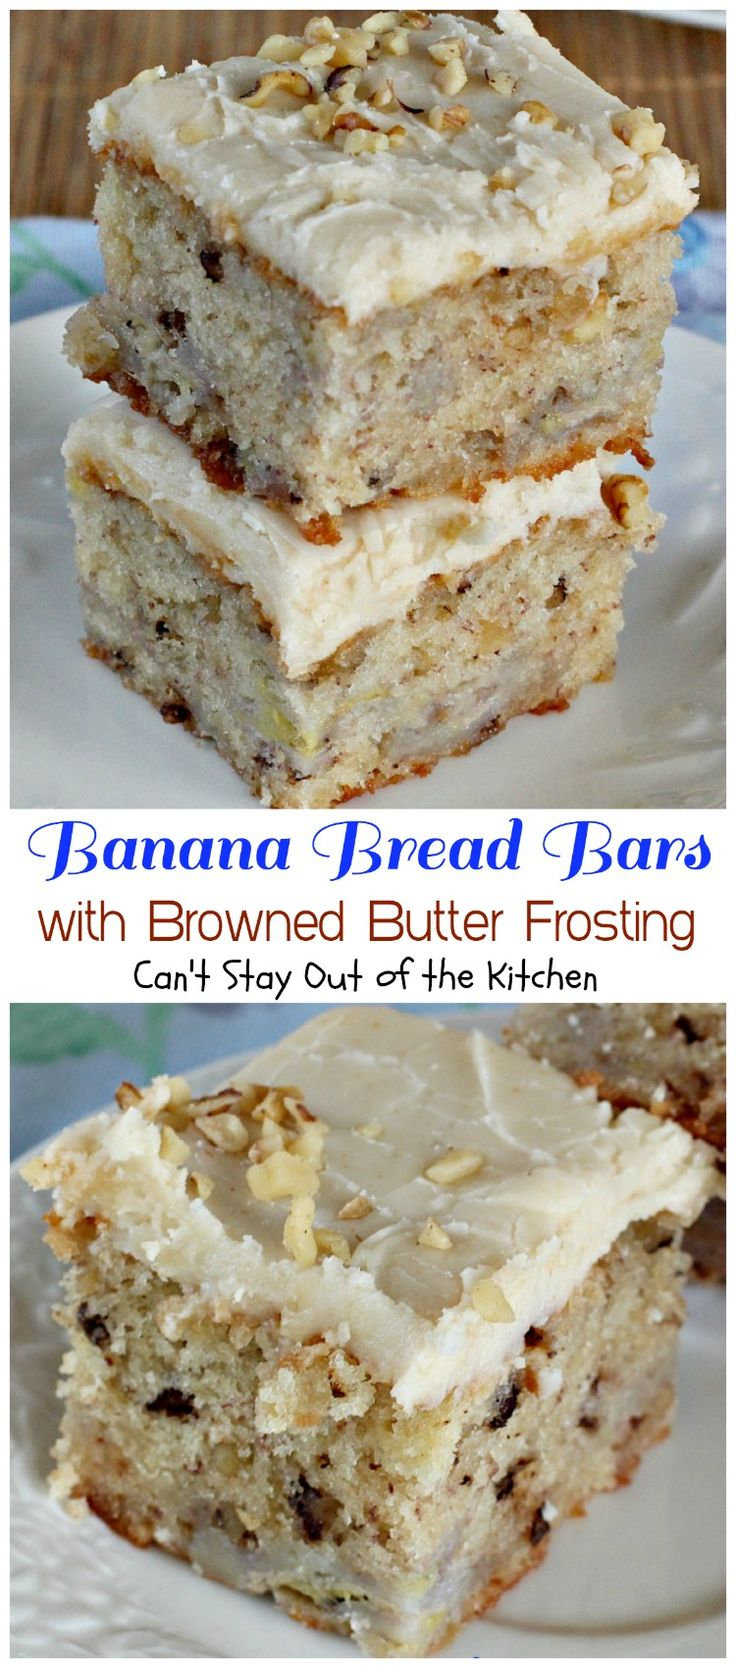 These lovely dessert bars are topped with a fantastic Browned Butter Frosting that's absolutely heavenly. Great way to use up overripe bananas too.